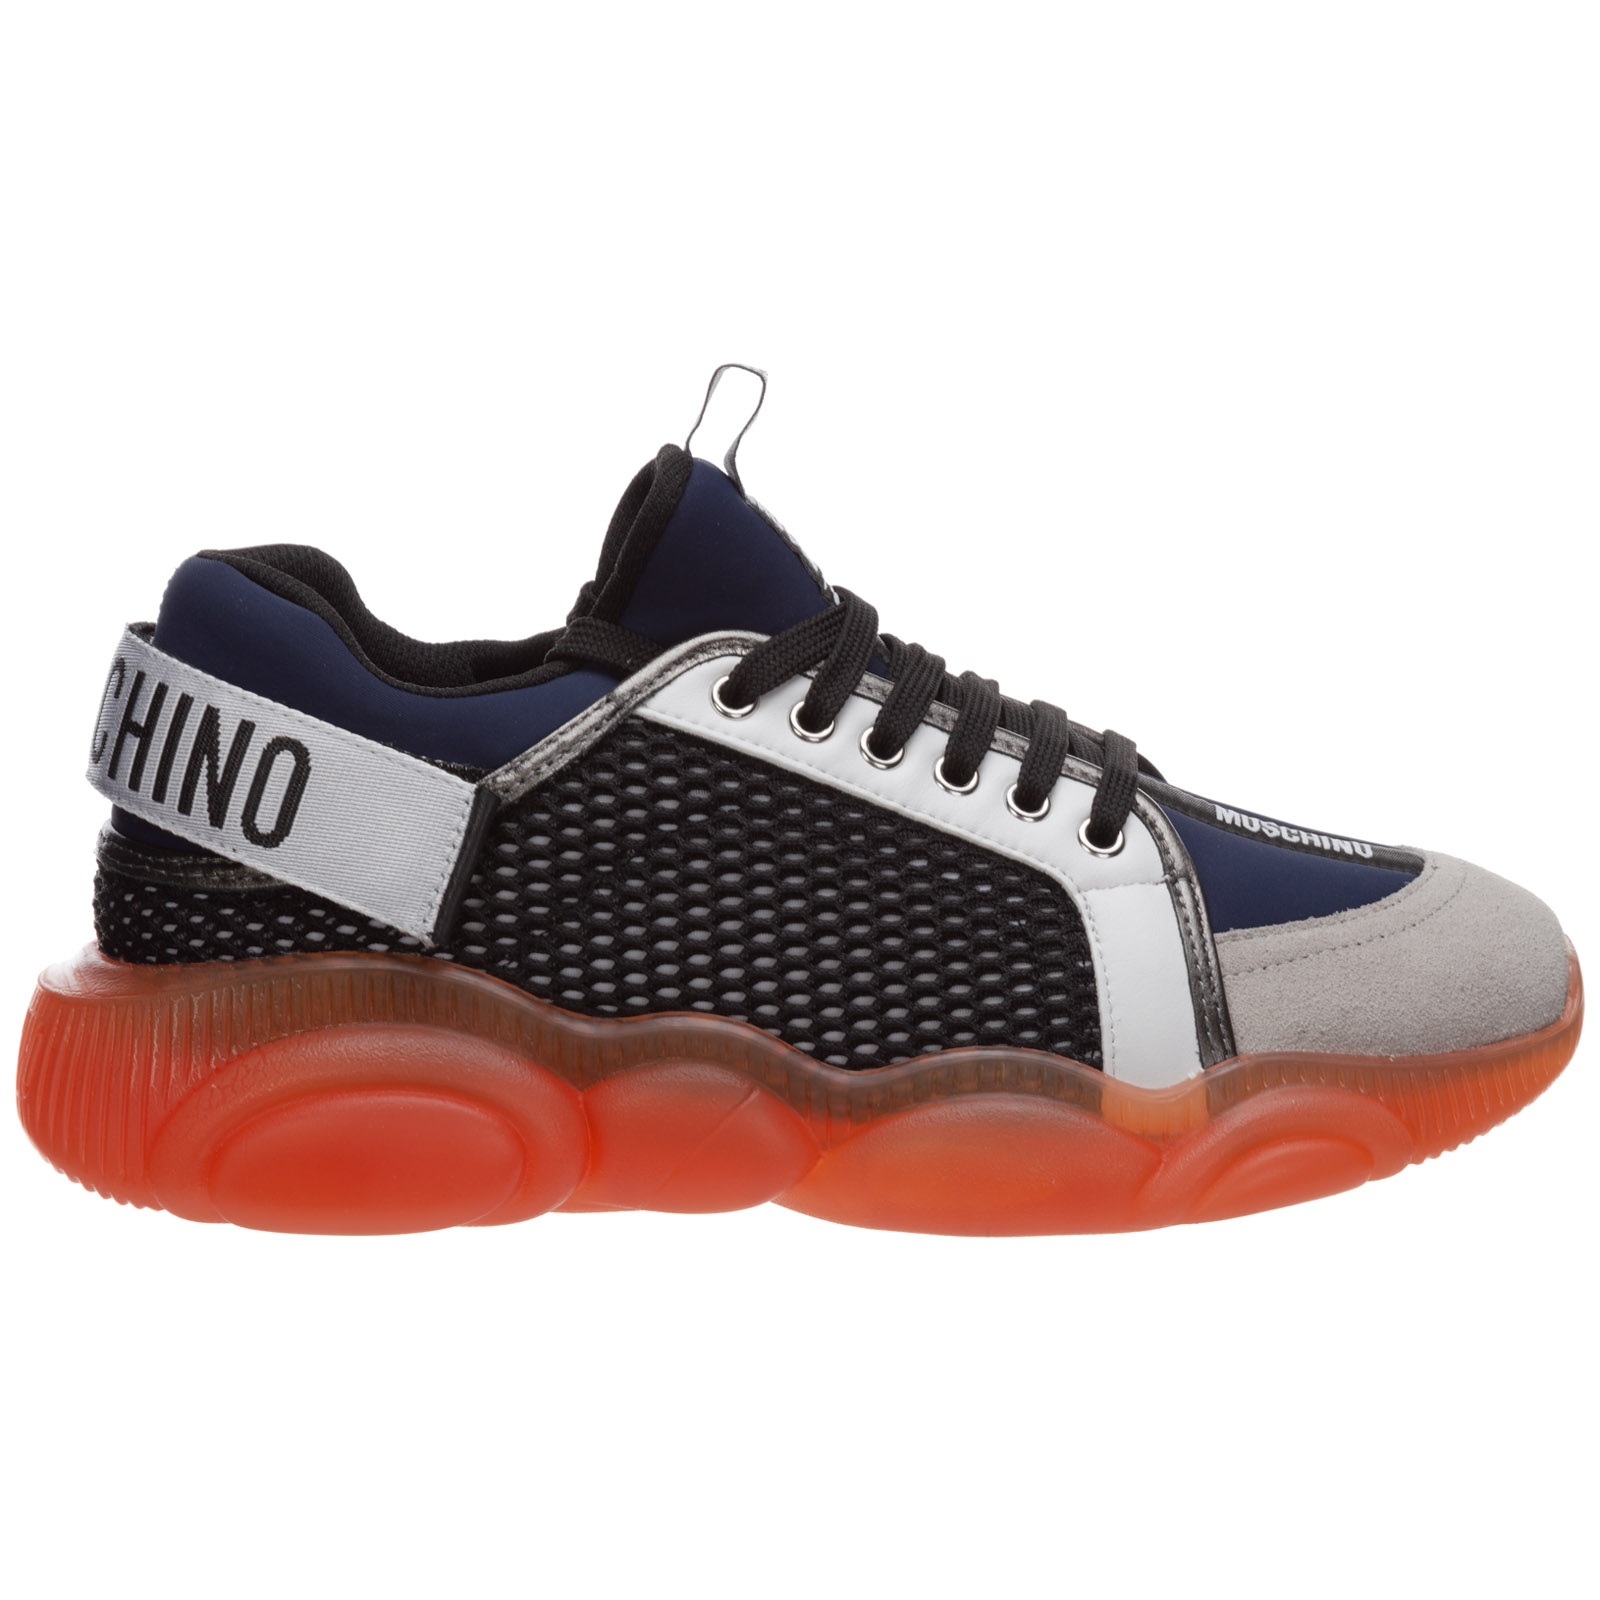 Moschino MEN'S SHOES LEATHER TRAINERS SNEAKERS TEDDY ORSO